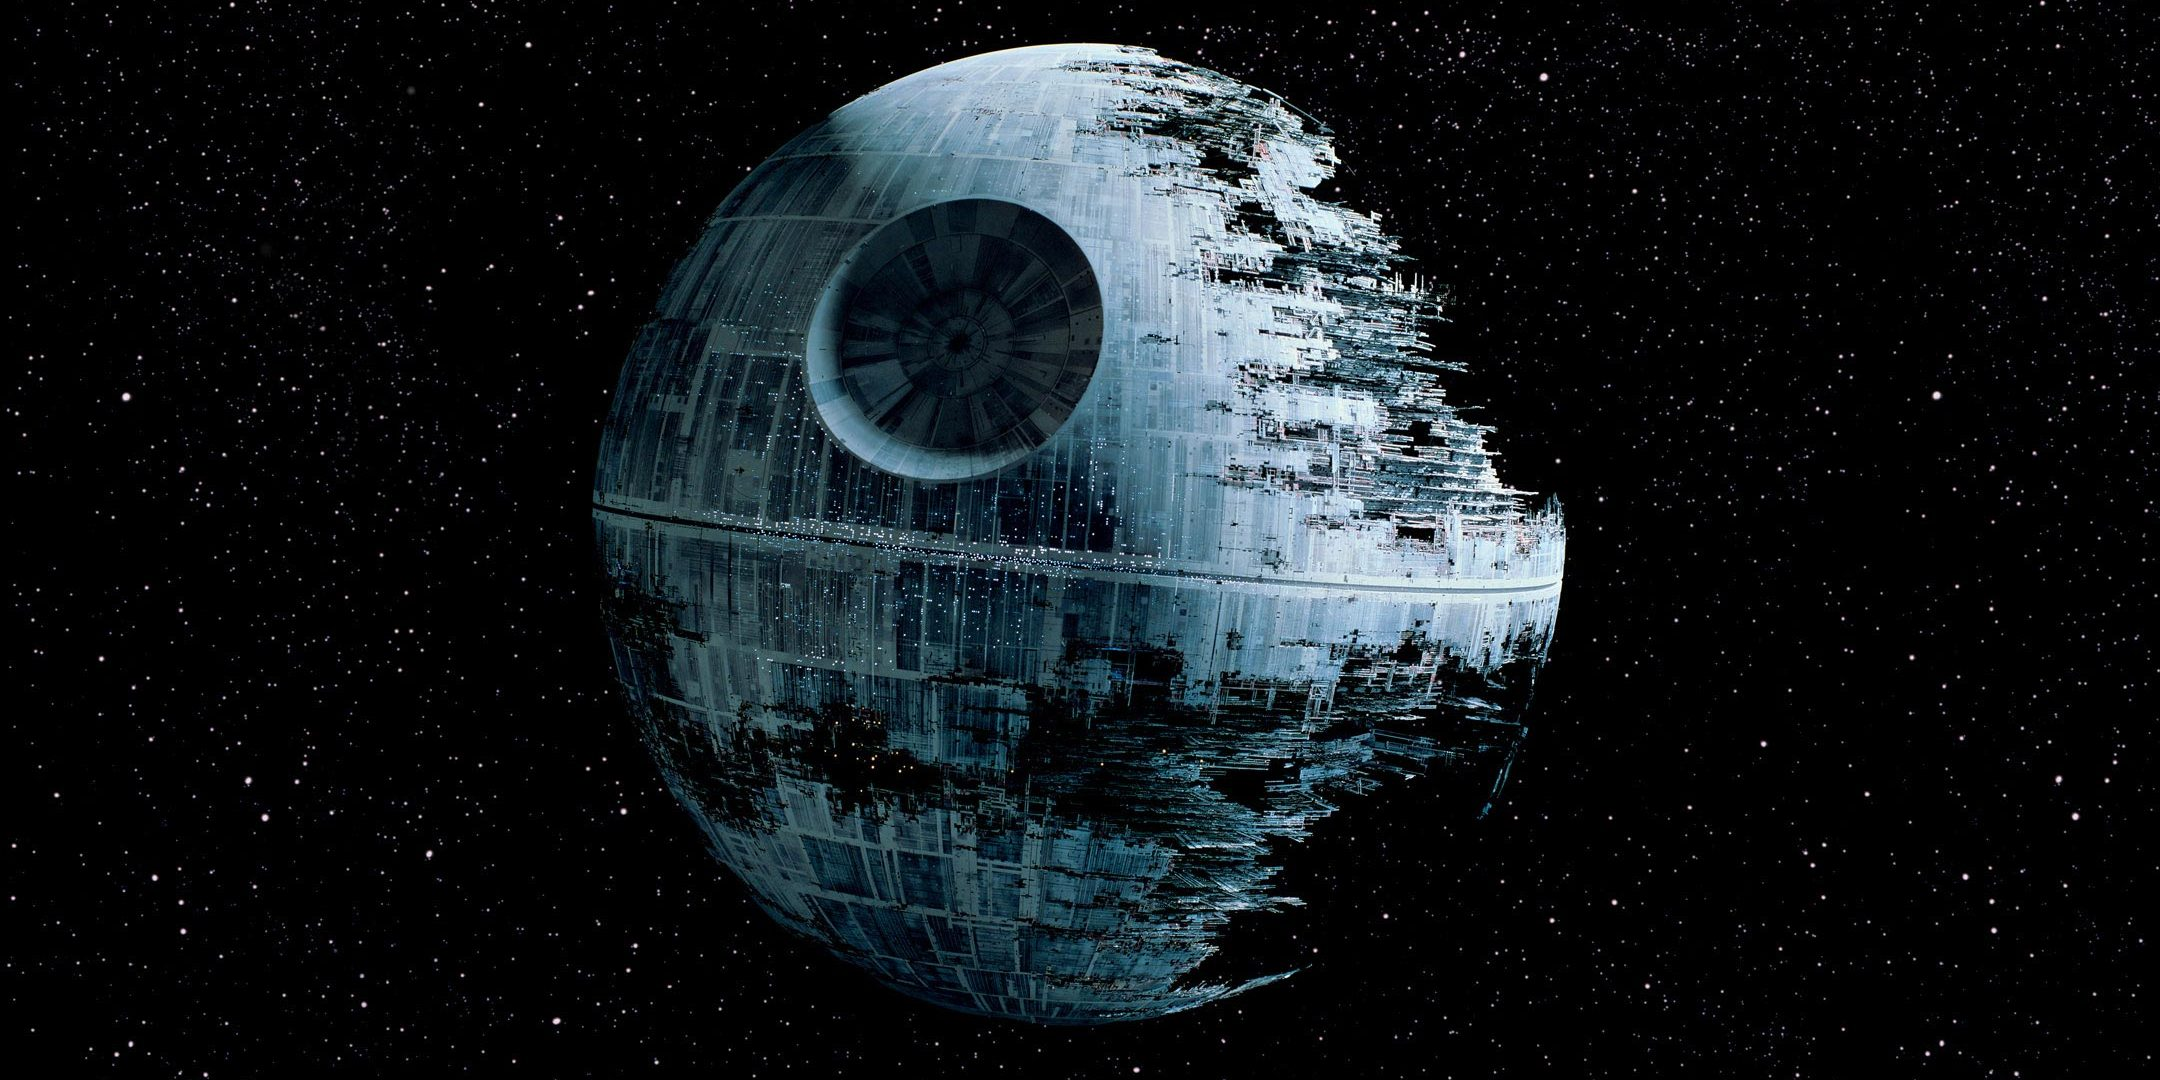 #1 The Death Star, Star Wars